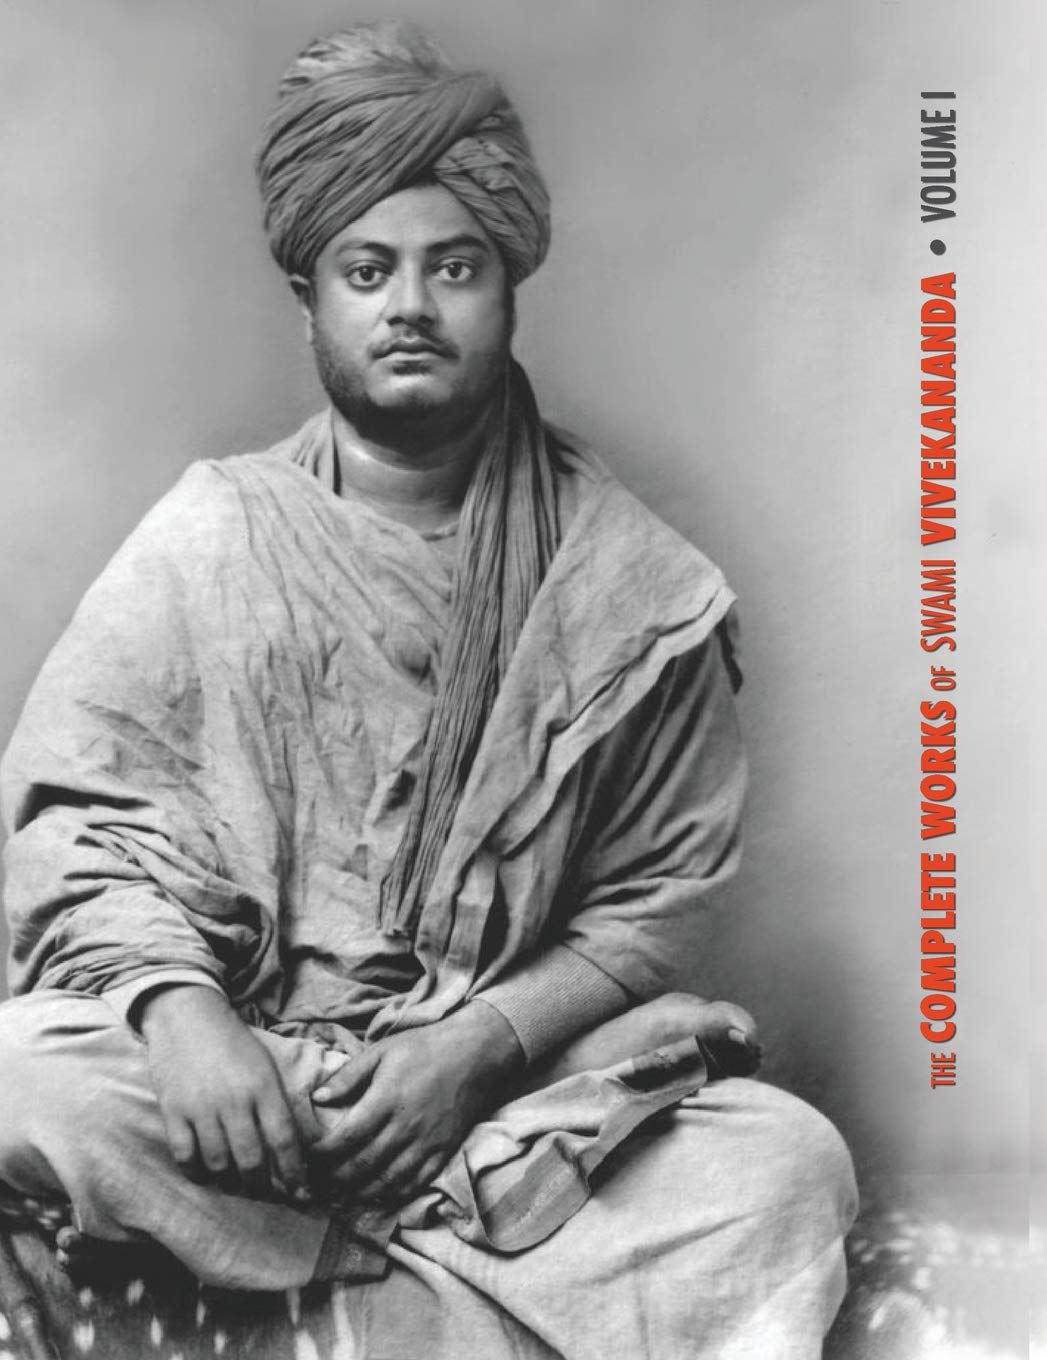 Amazon.com: The Complete Works of Swami Vivekananda, Volume ...